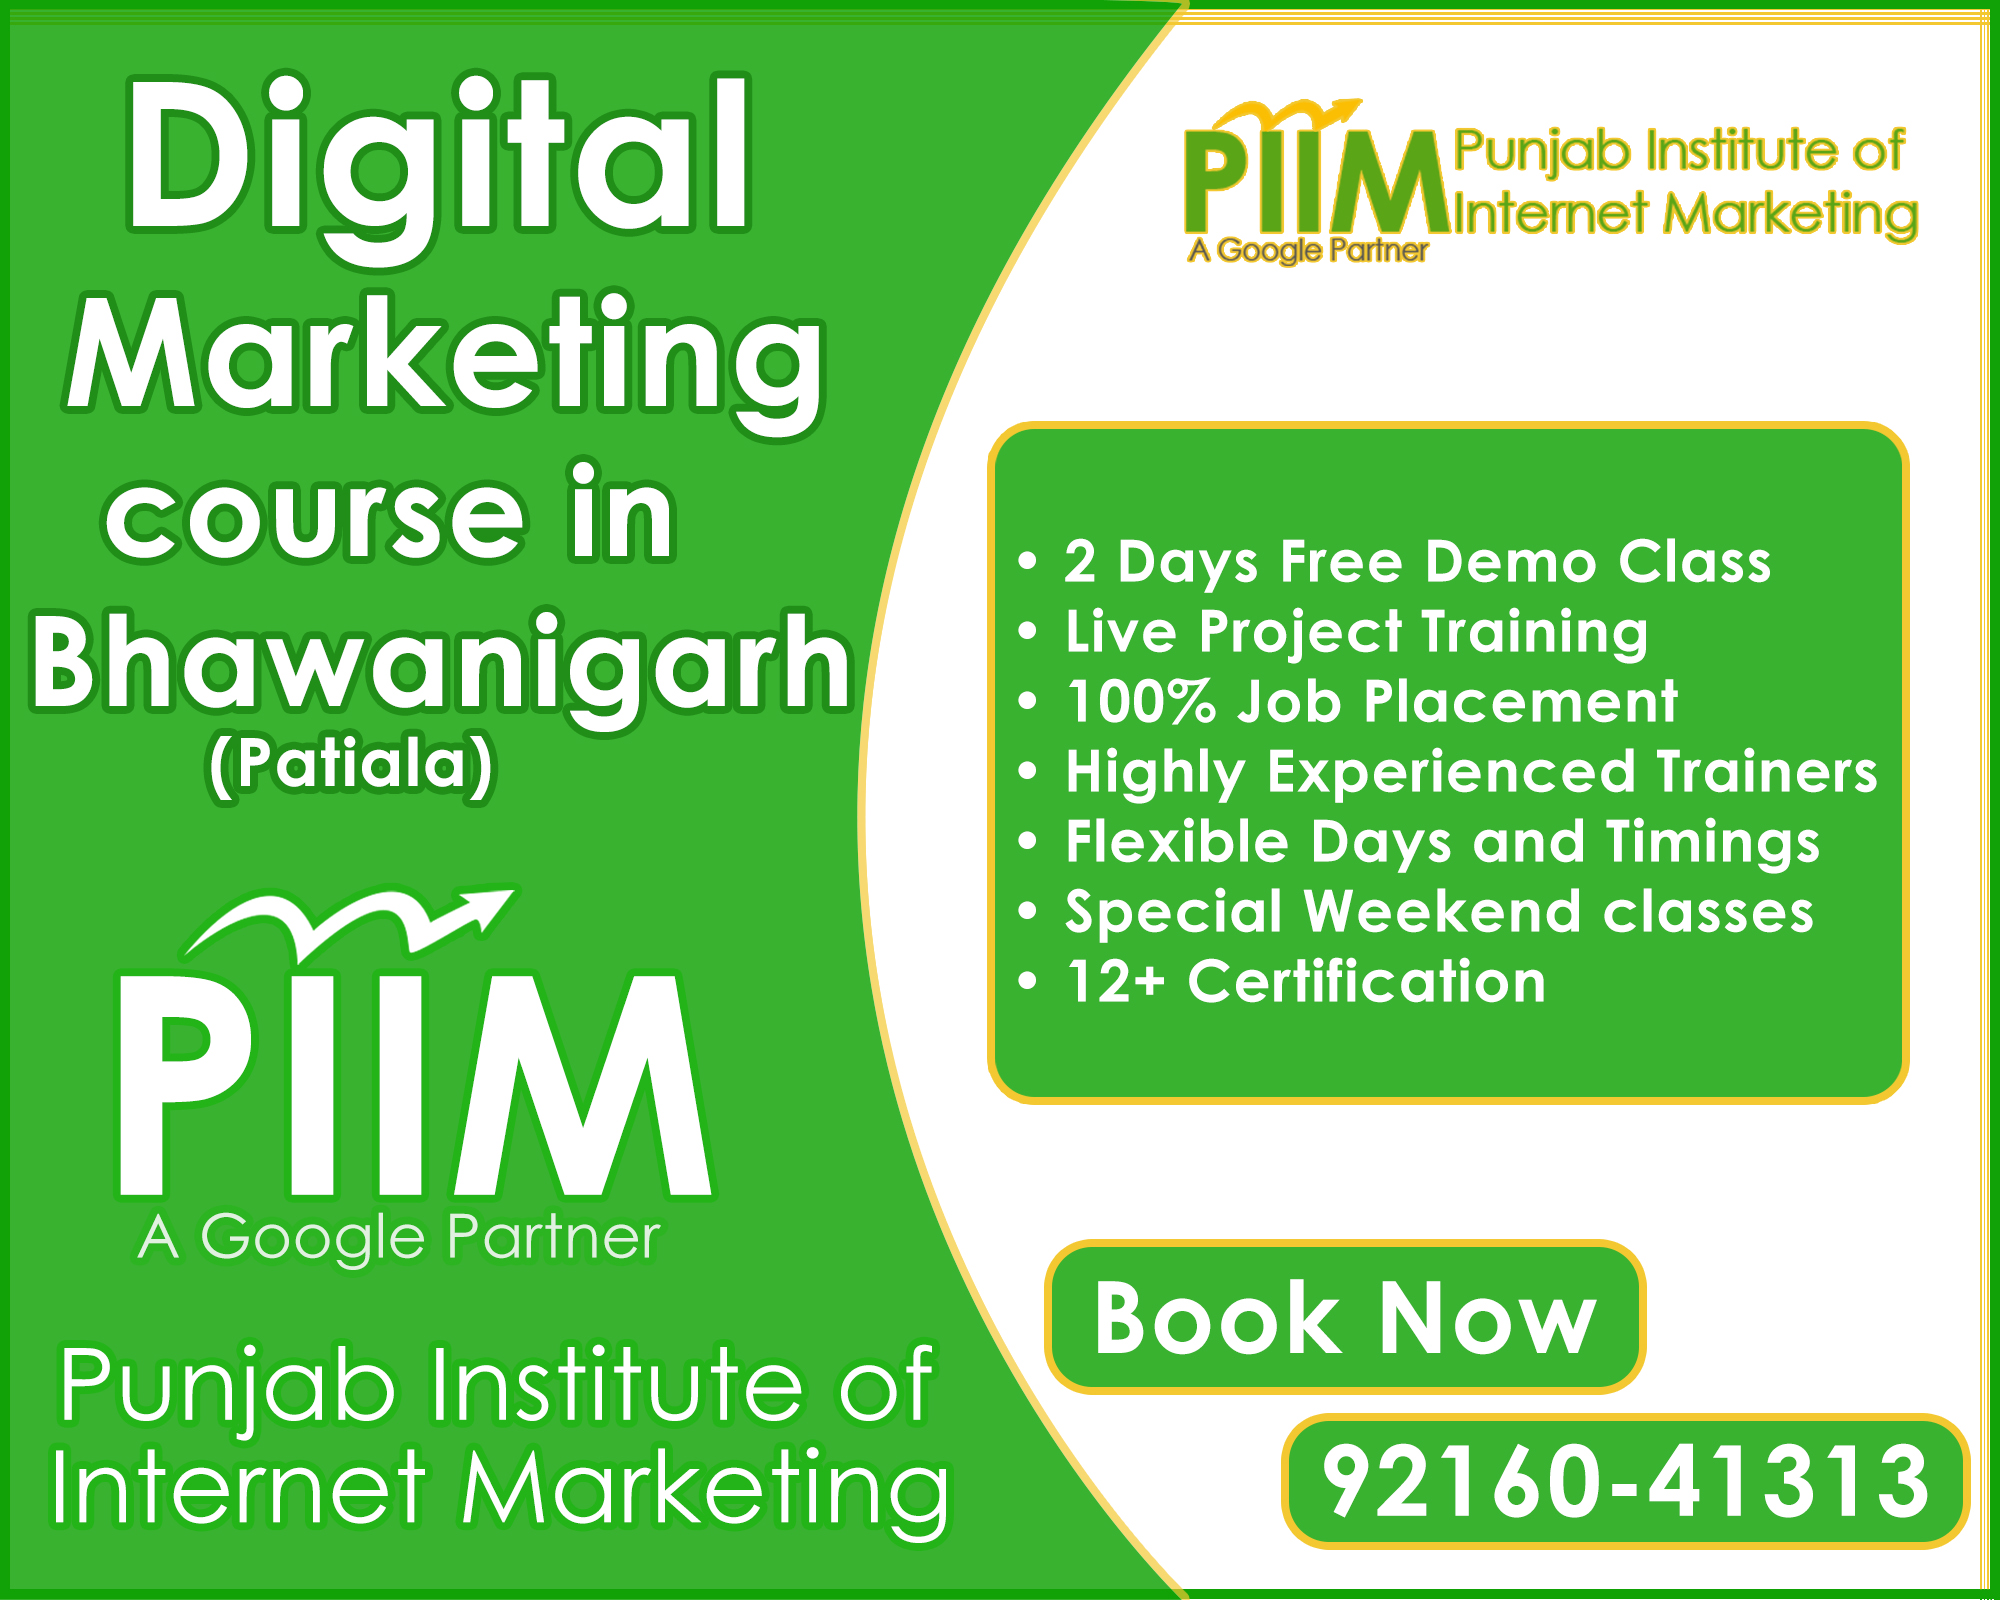 Digital Marketing Course in Bhawanigarh